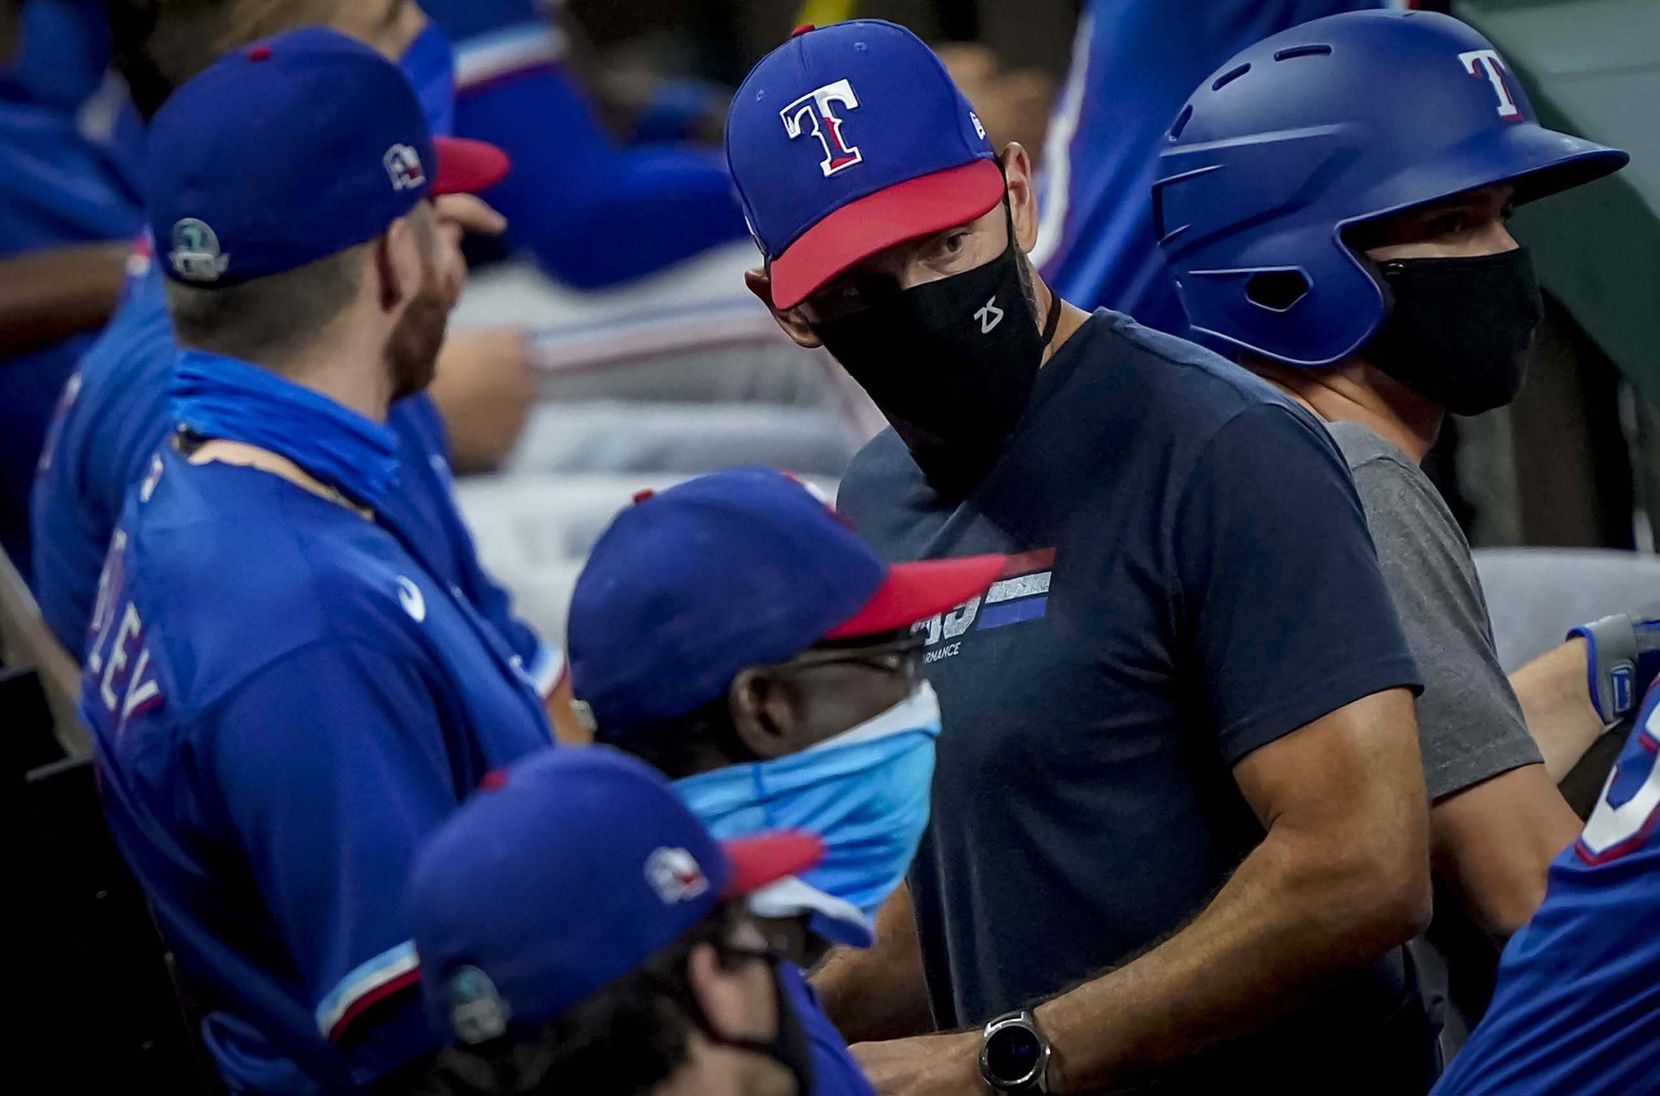 Manager Chris Woodward looks out from the dugout in an intrasquad game during Texas Rangers Summer Camp at Globe Life Field on Saturday, July 18, 2020.